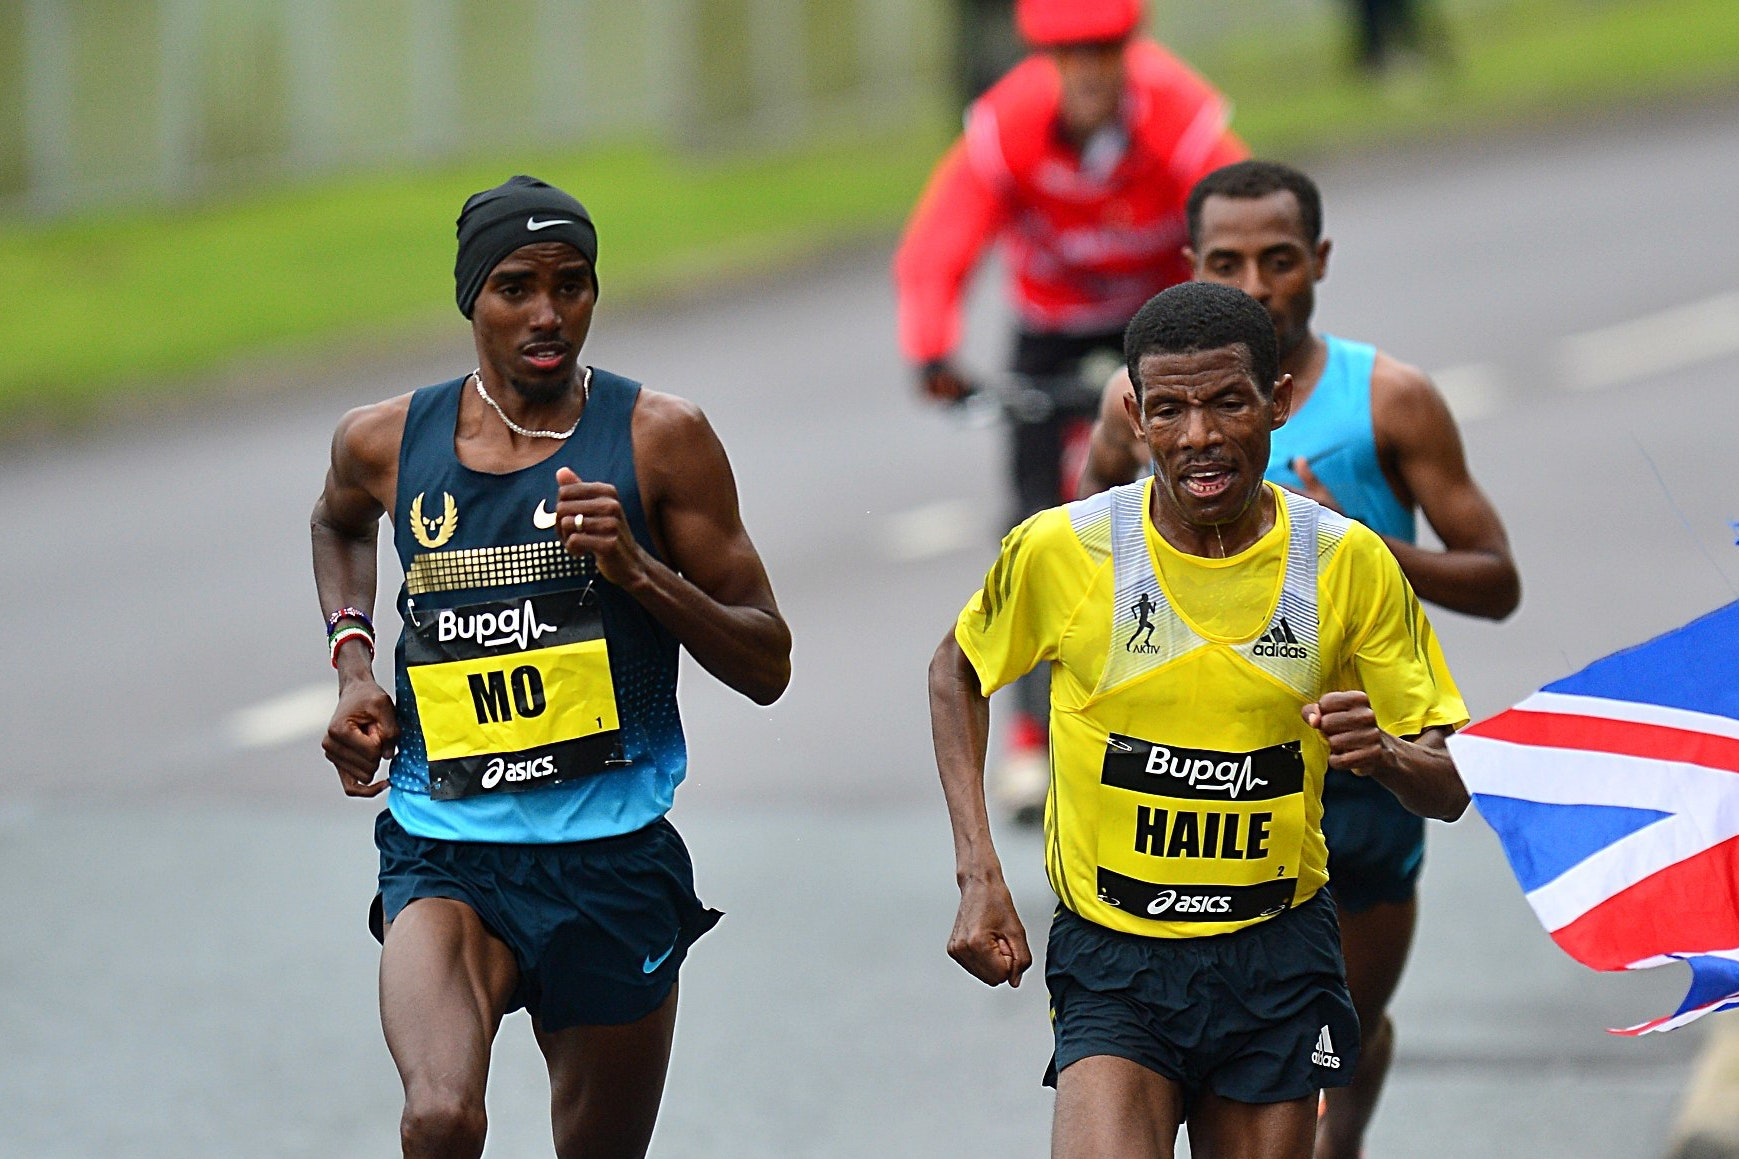 Gebrselassie makes fresh claims as Farah dispute continues